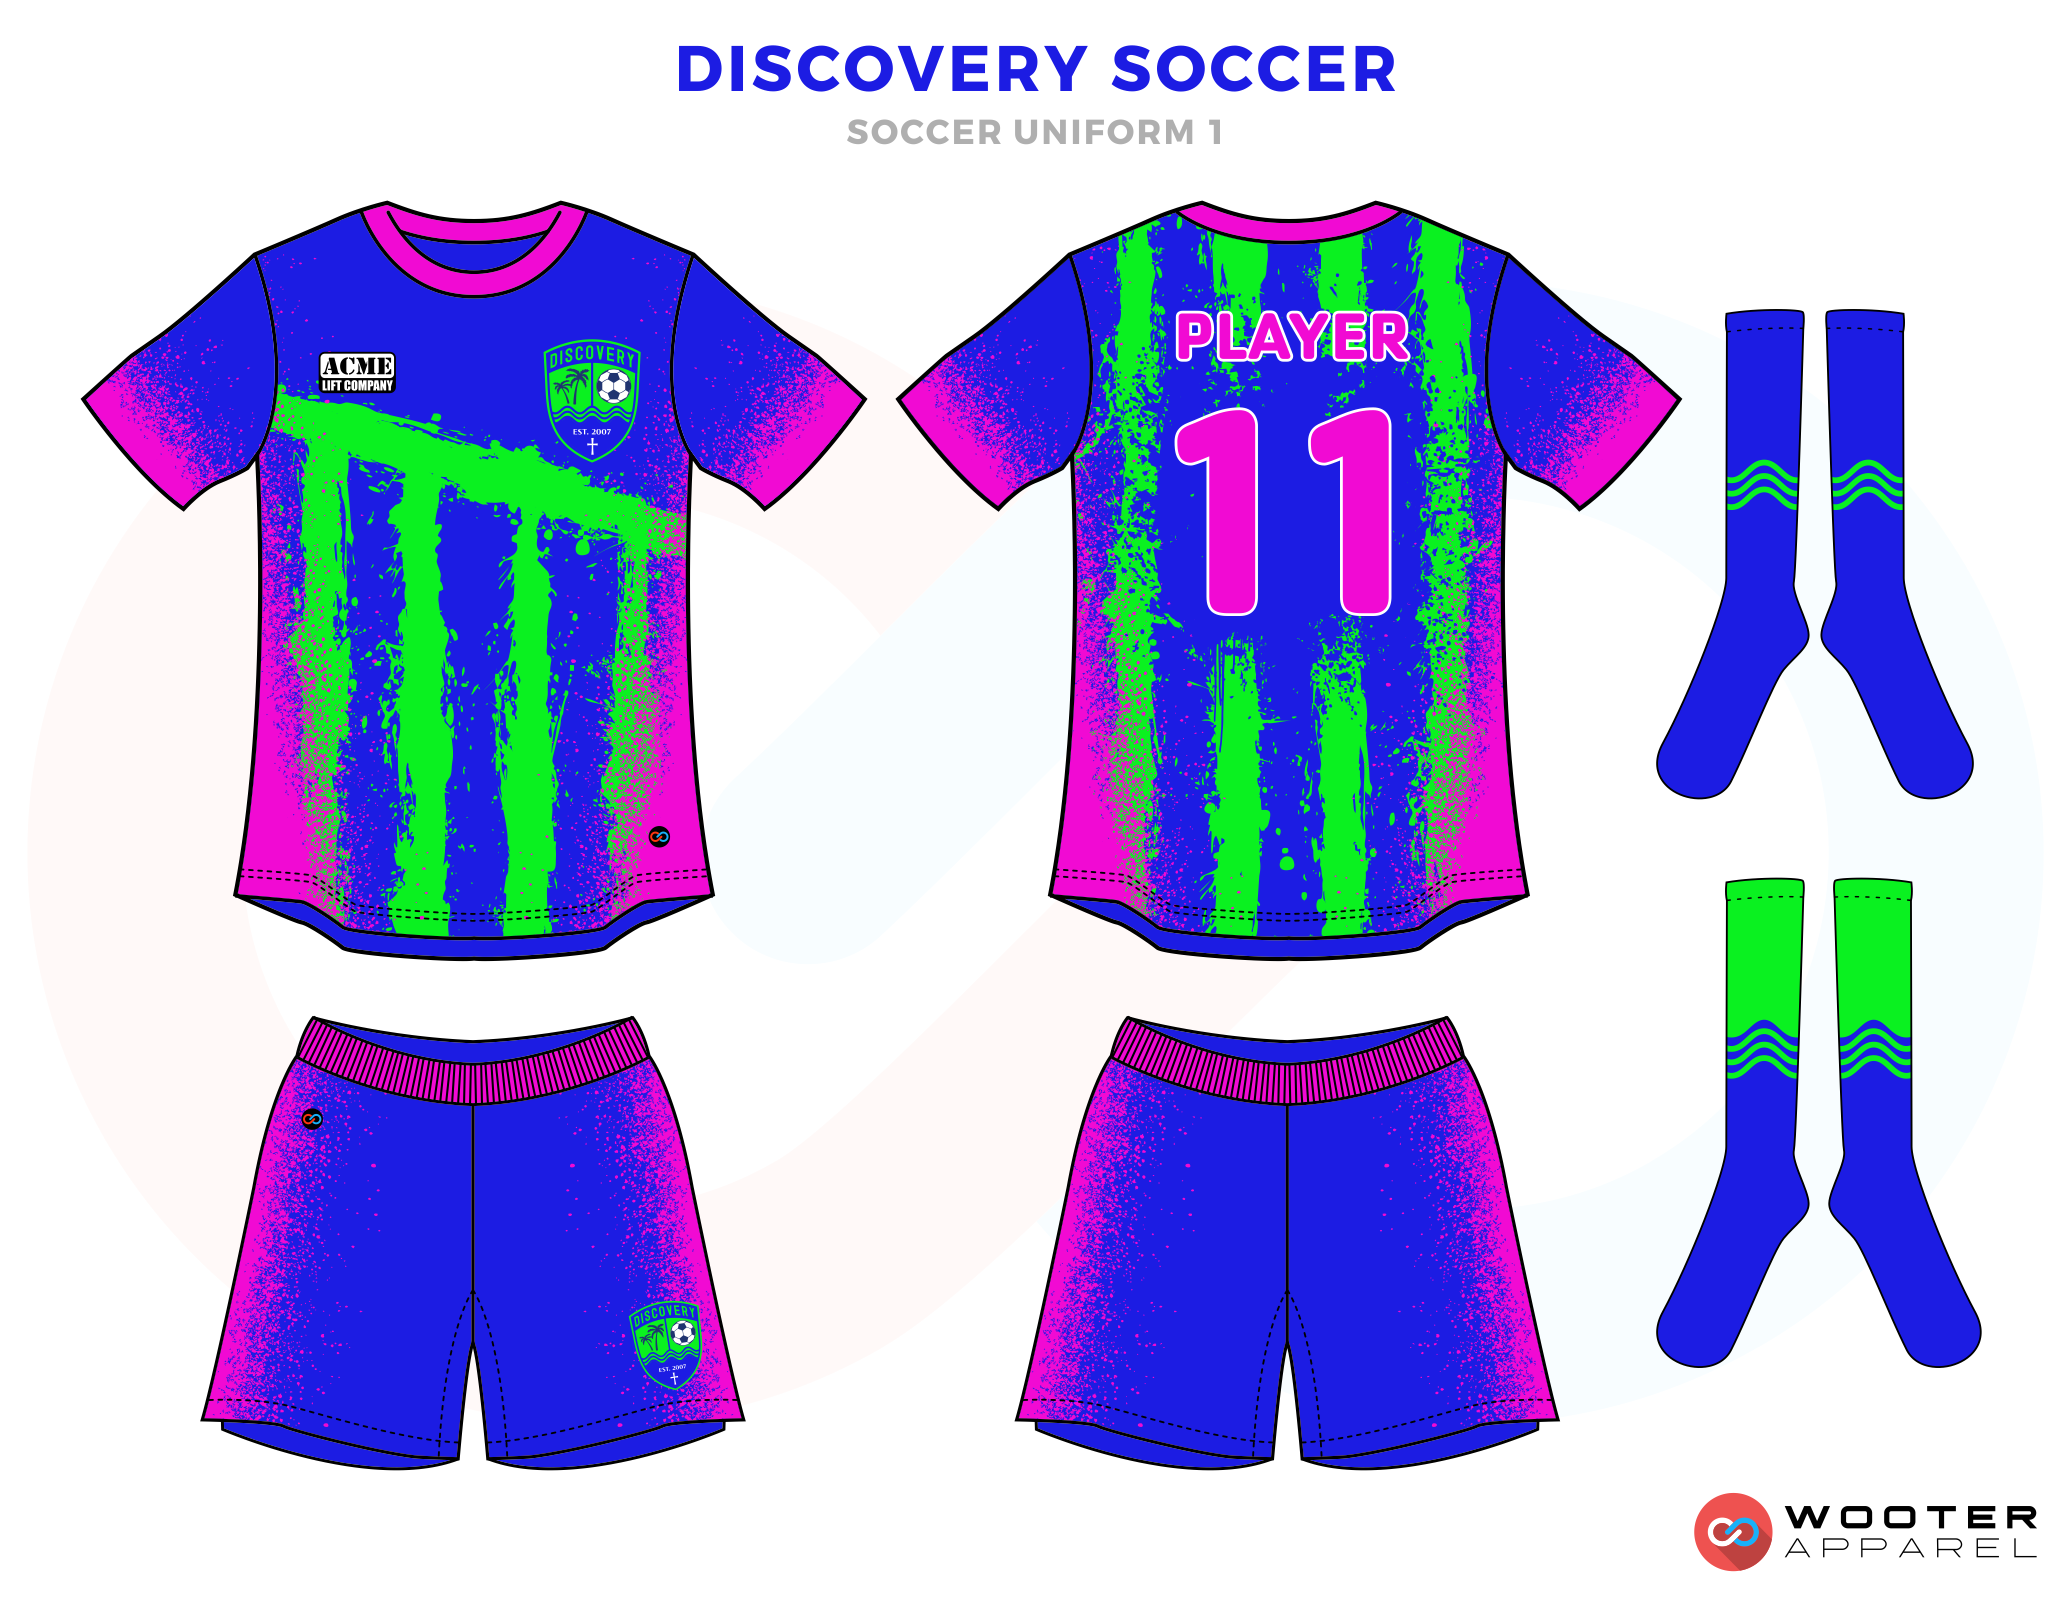 Discovery Soccer Purple Blue and Green Soccer Uniform, Jersey and Shorts